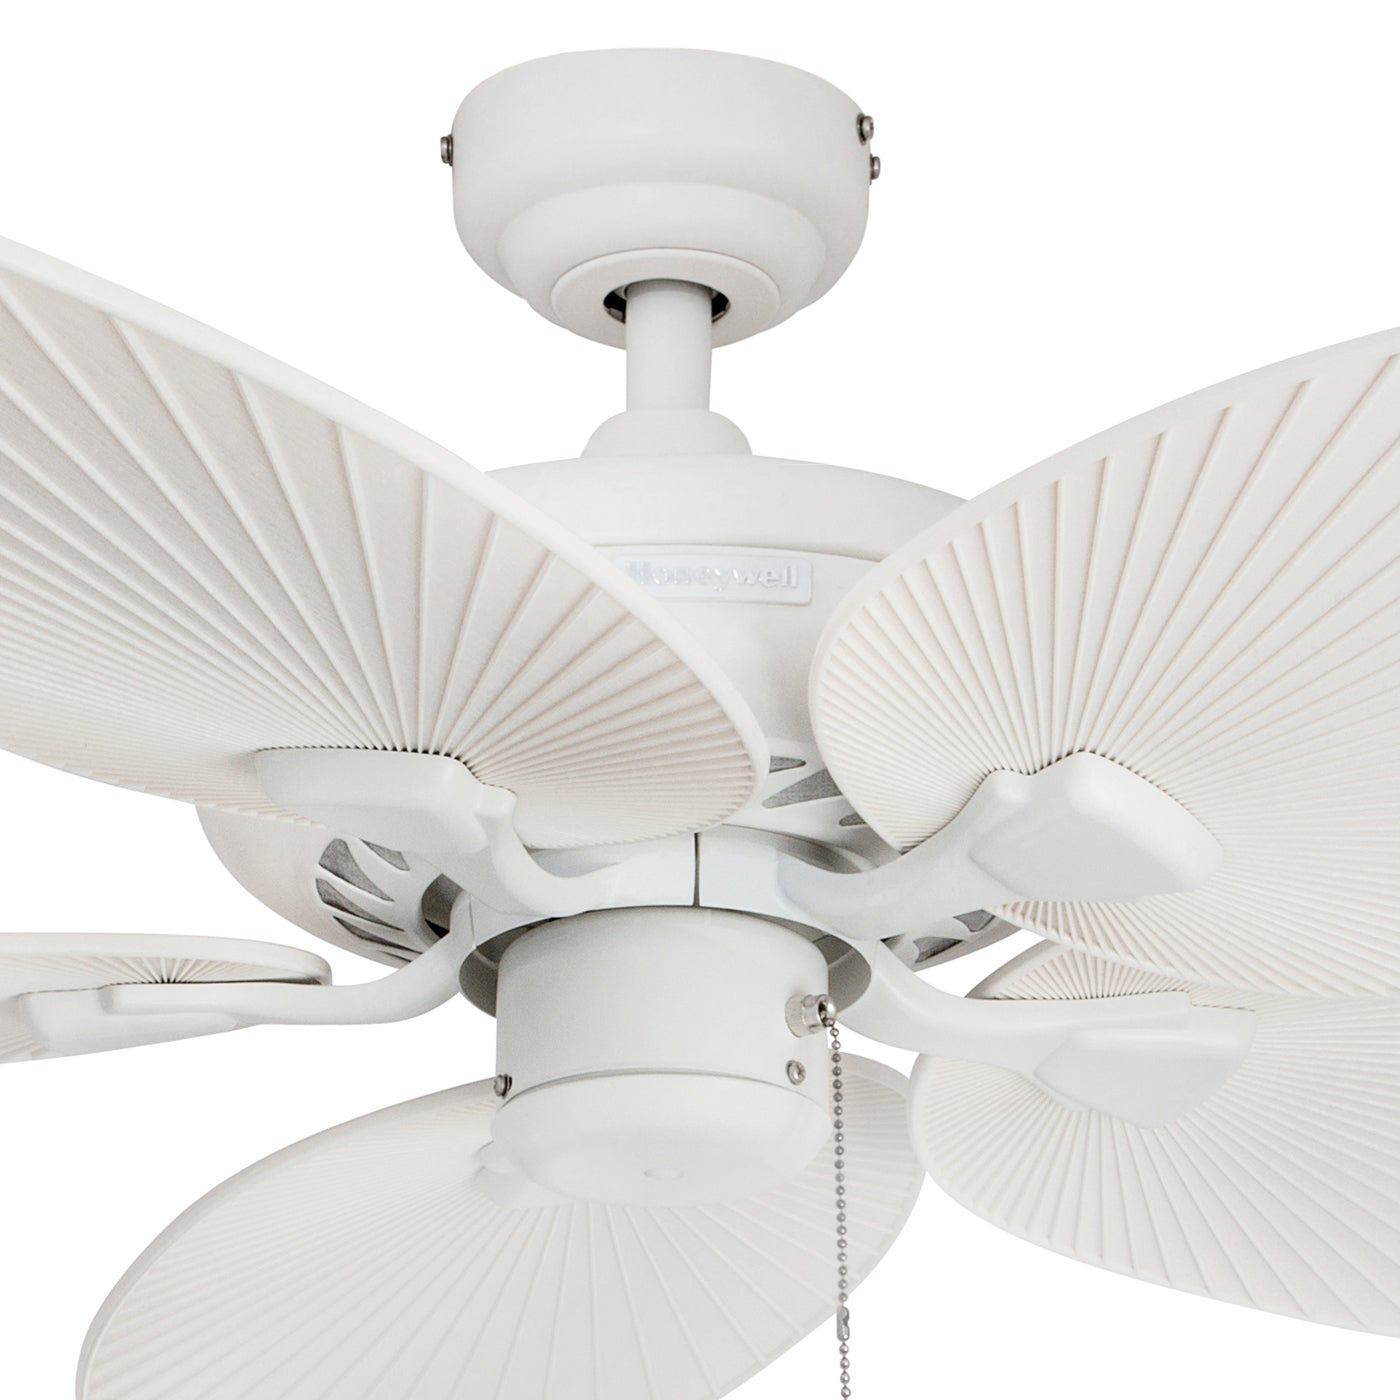 Shop Black Friday Deals On Honeywell Ceiling Fans 50200 Palm Island Tropical Indoor Outdoor Ceiling Fan White 52 Inch Overstock 16000060